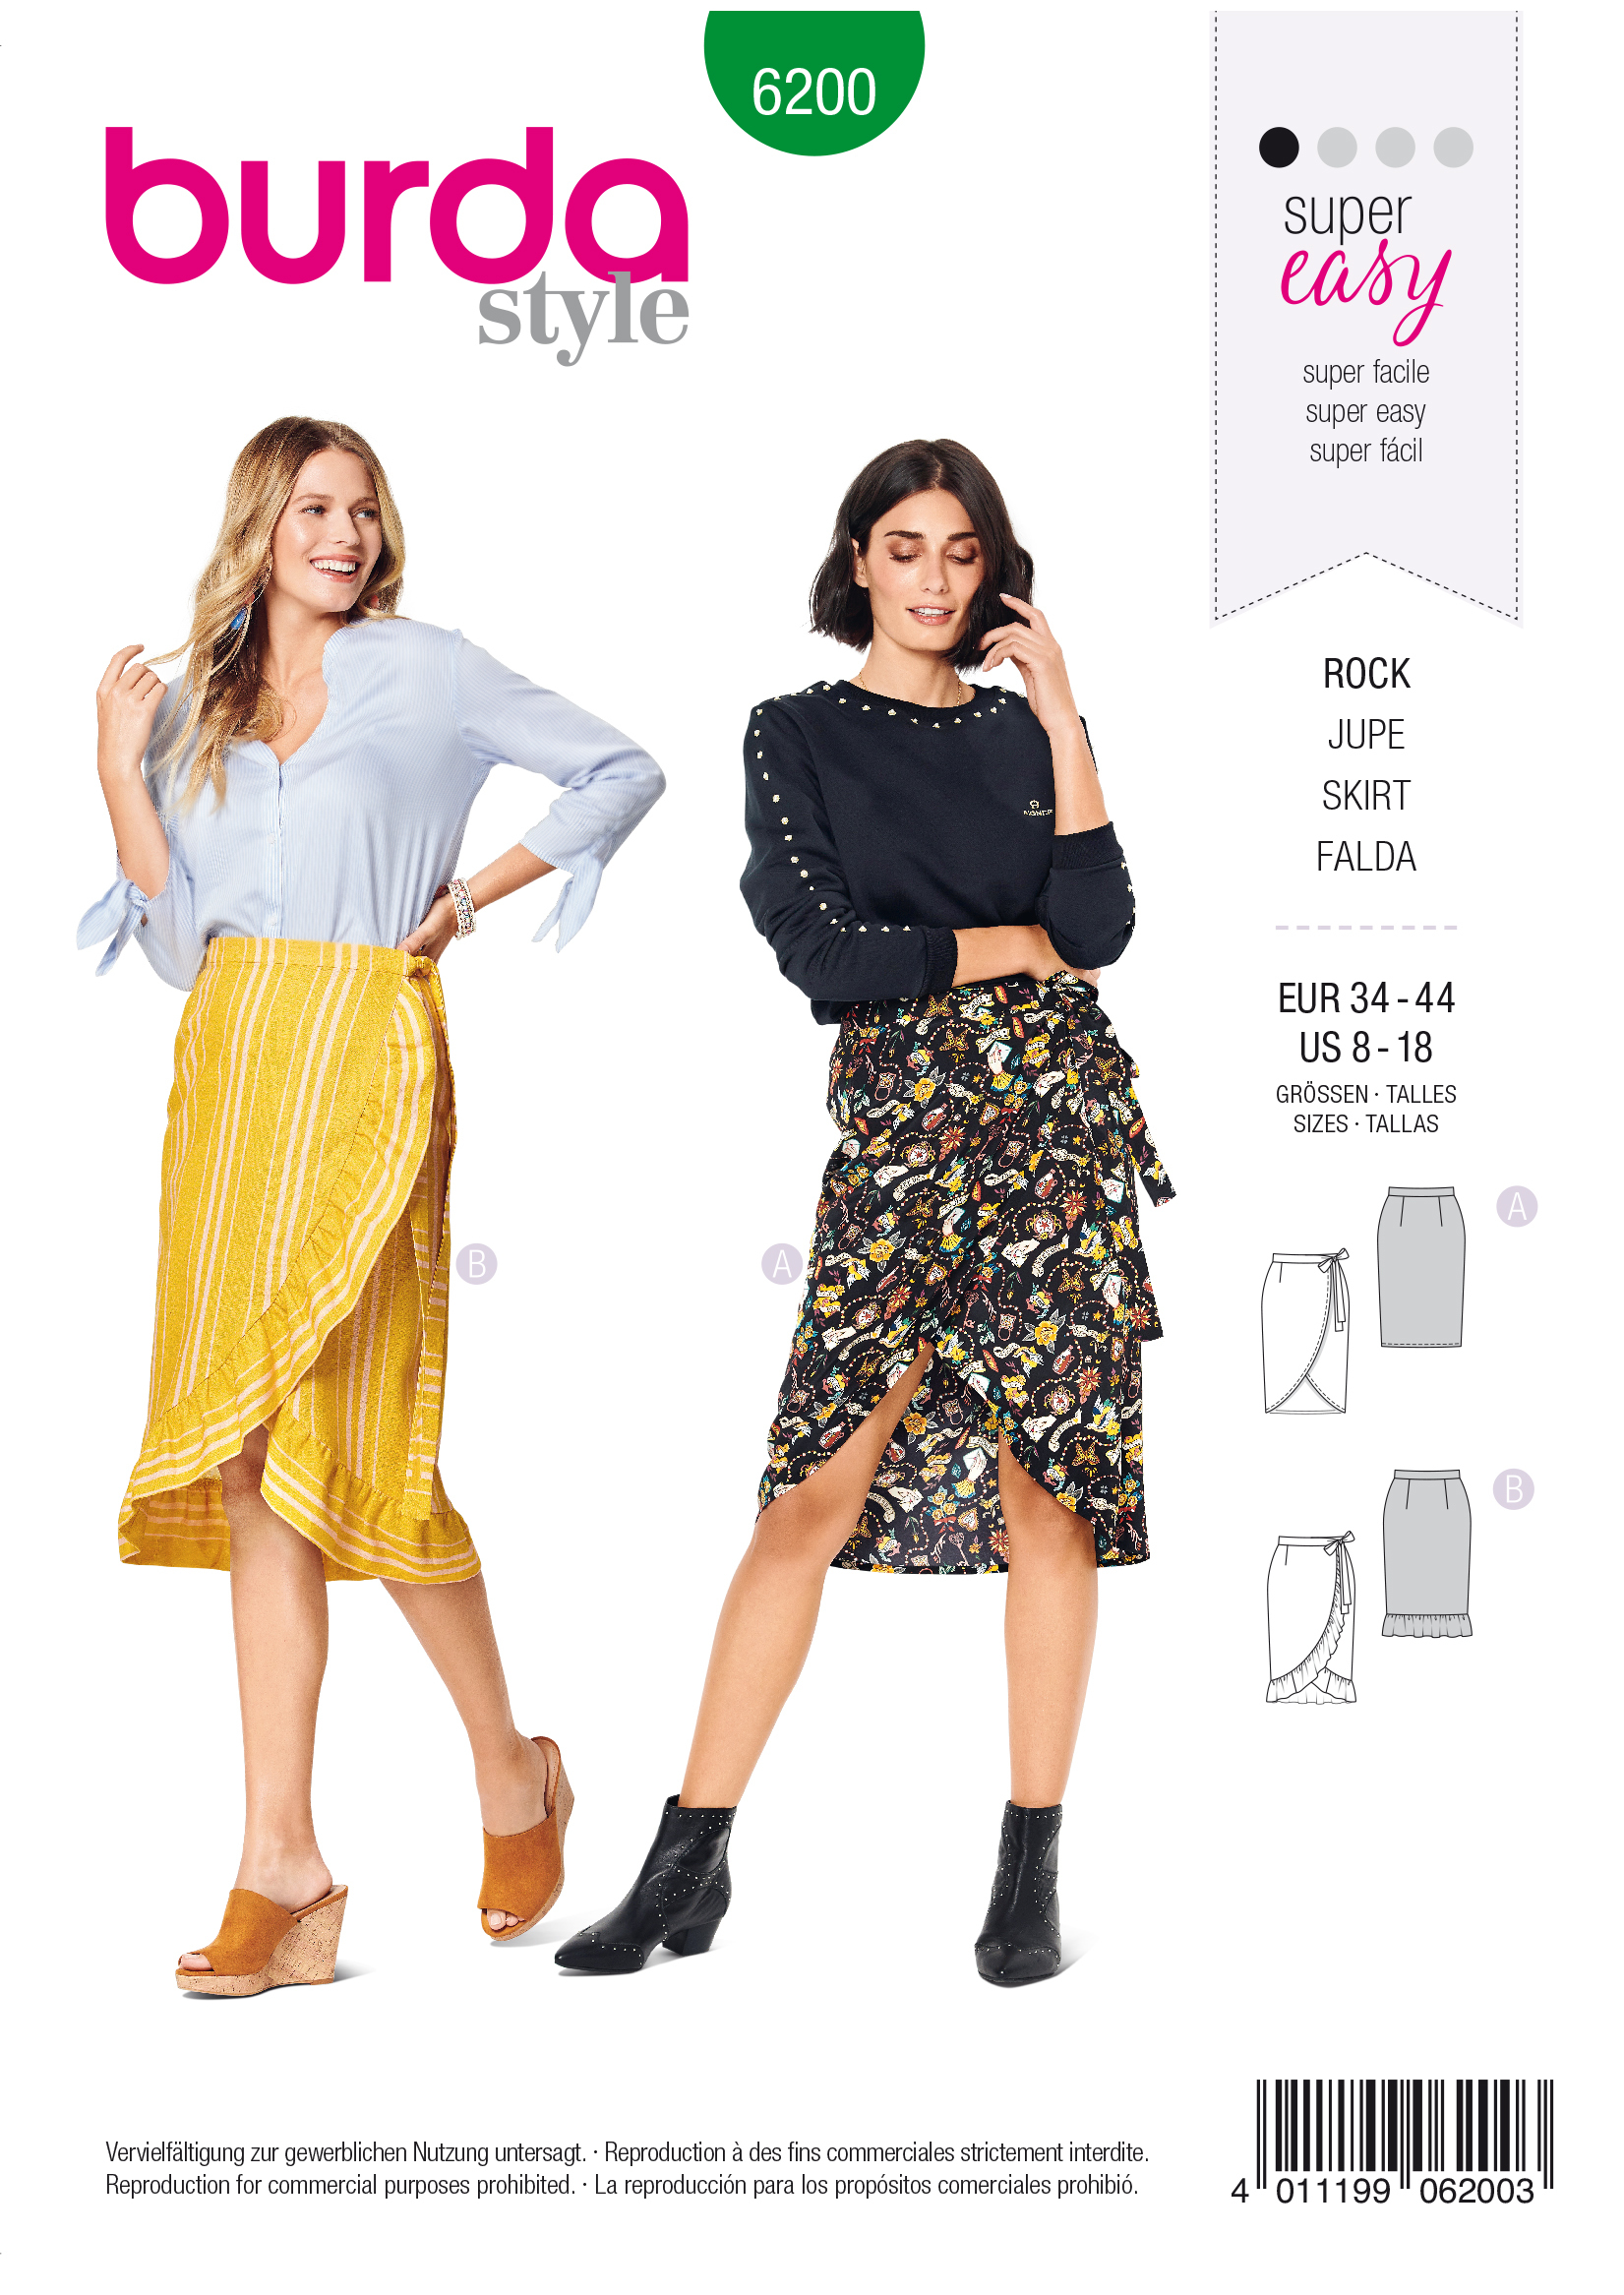 The Great British Sewing Bee inspired patterns from Sew Direct